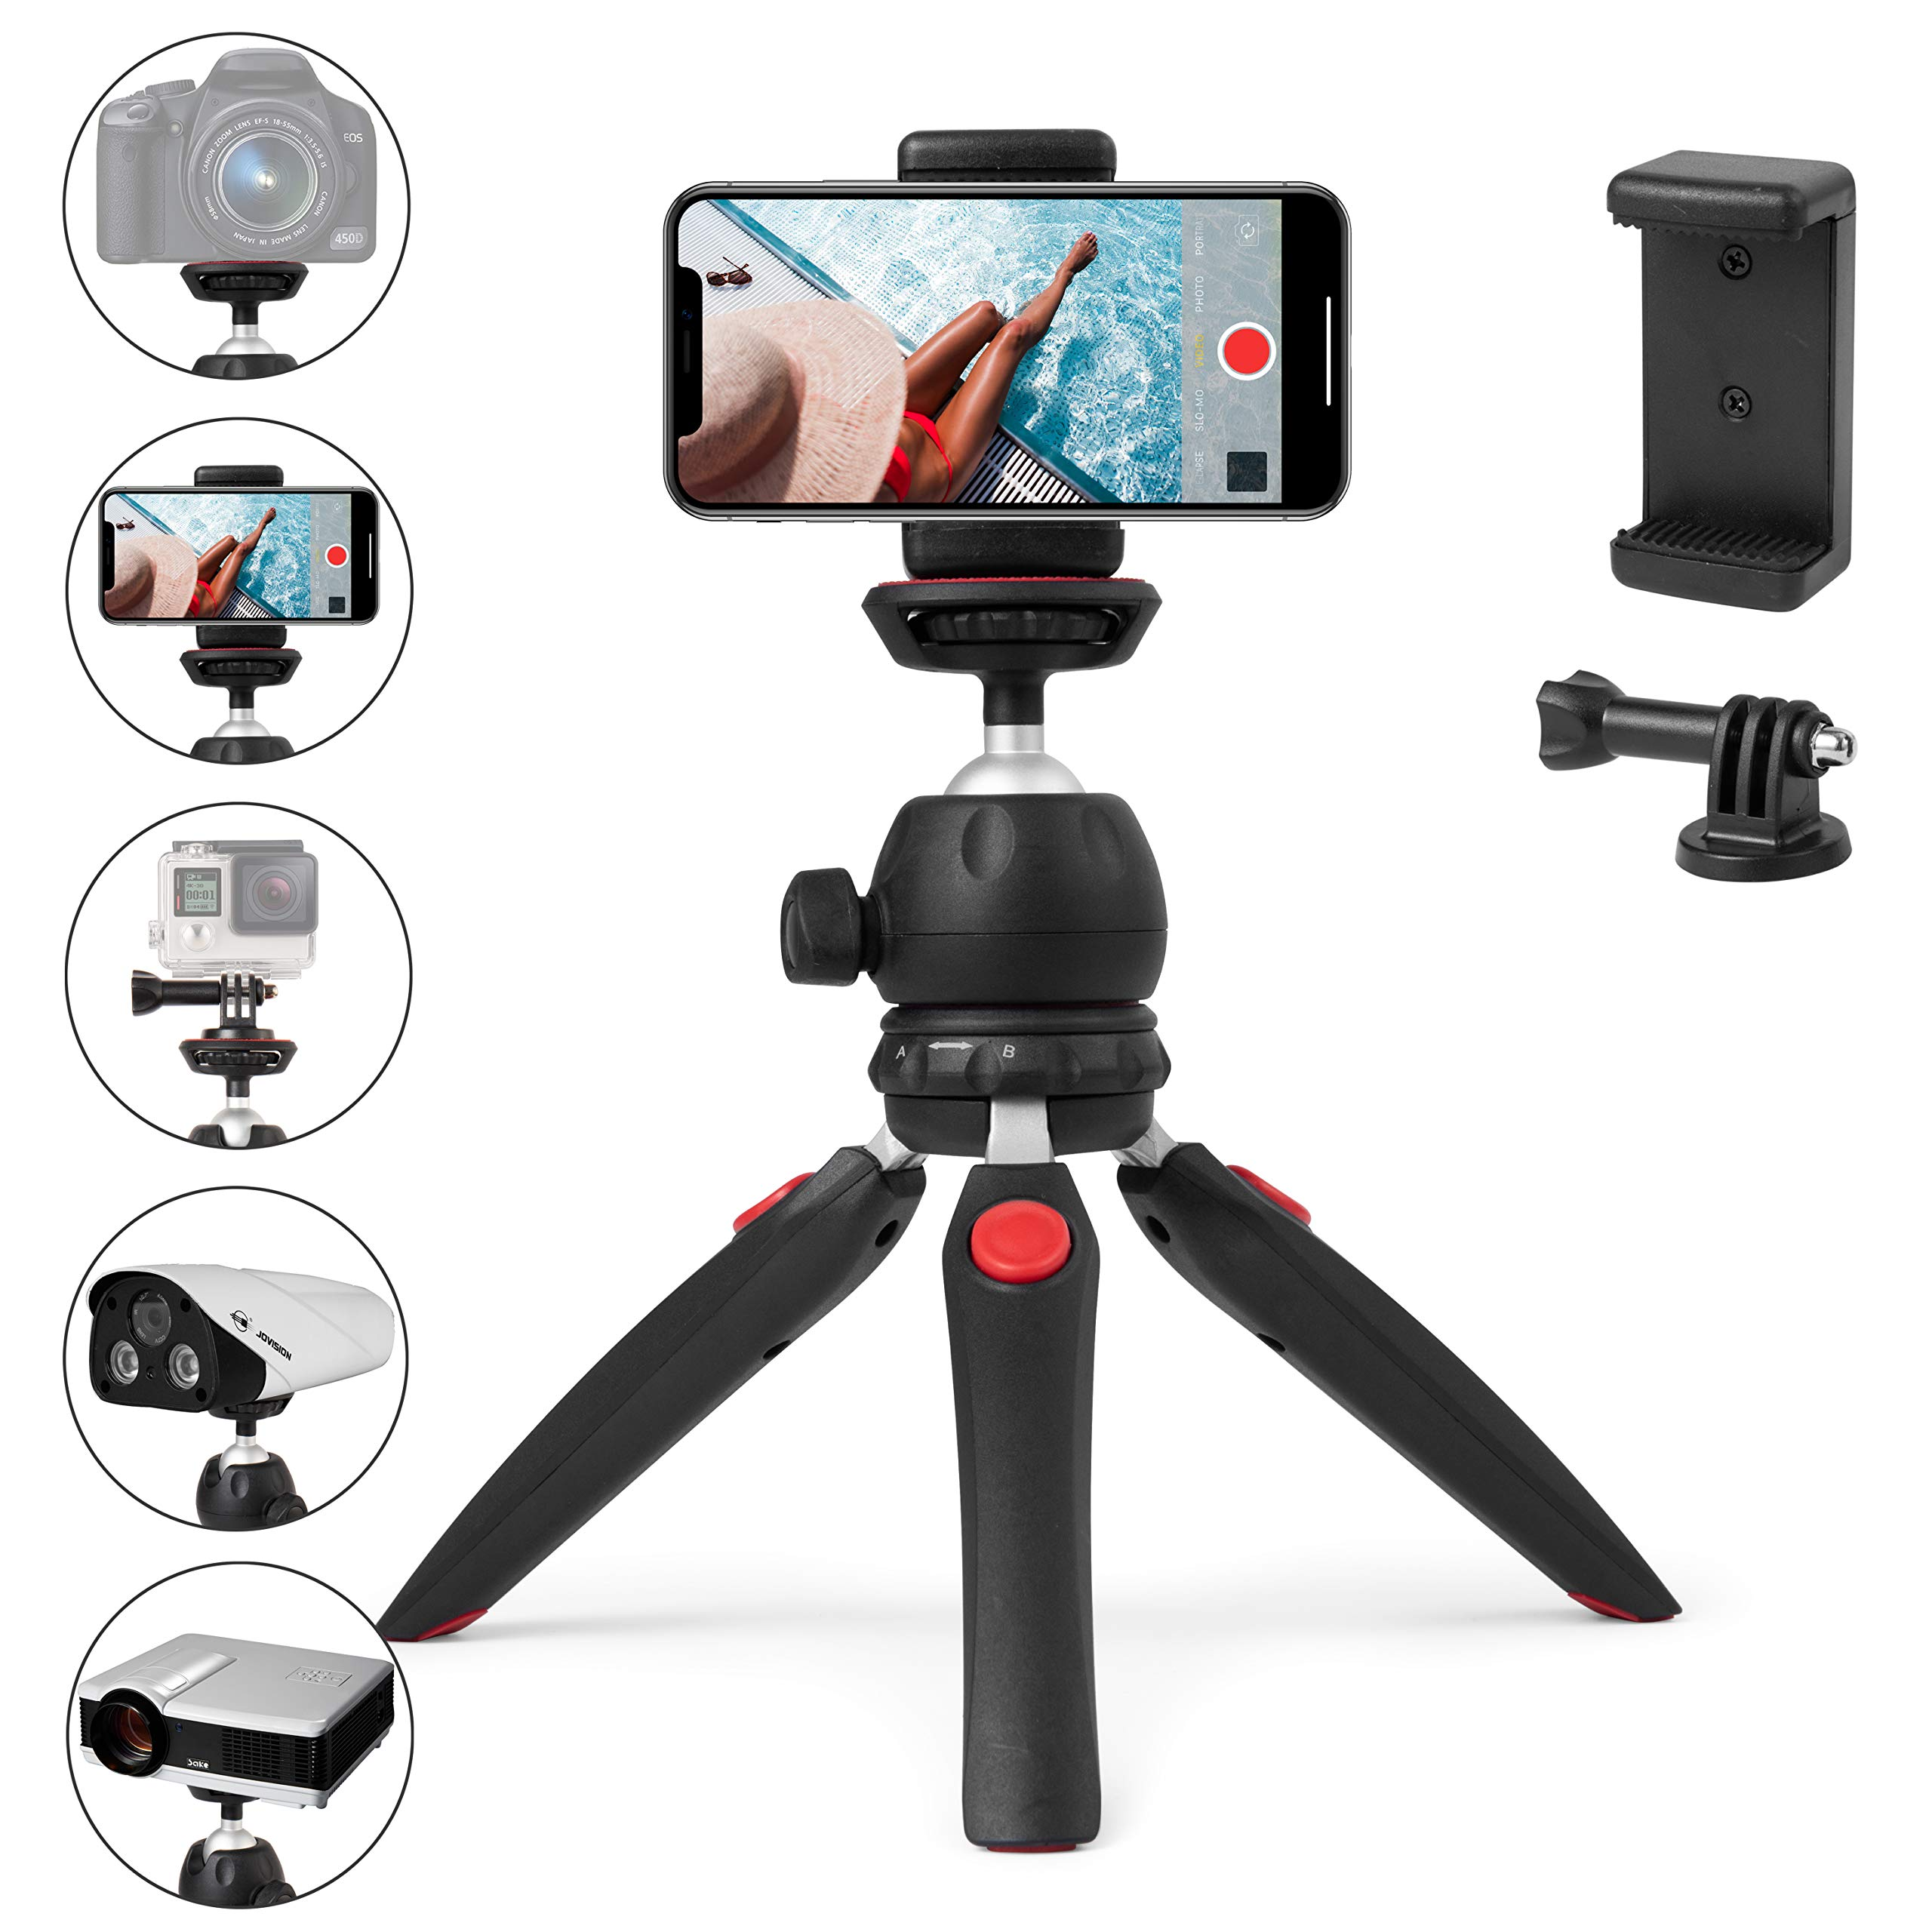 Polarduck Mini Tripod, Cell Phone Tripod, Tabletop Holder Tripod Stand for iPhone/Camera/DLSR/Android Smartphone/Projector with Universal Phone Mount & GoPro Mount, Fully Adjustable Angle & Rotation by Polarduck